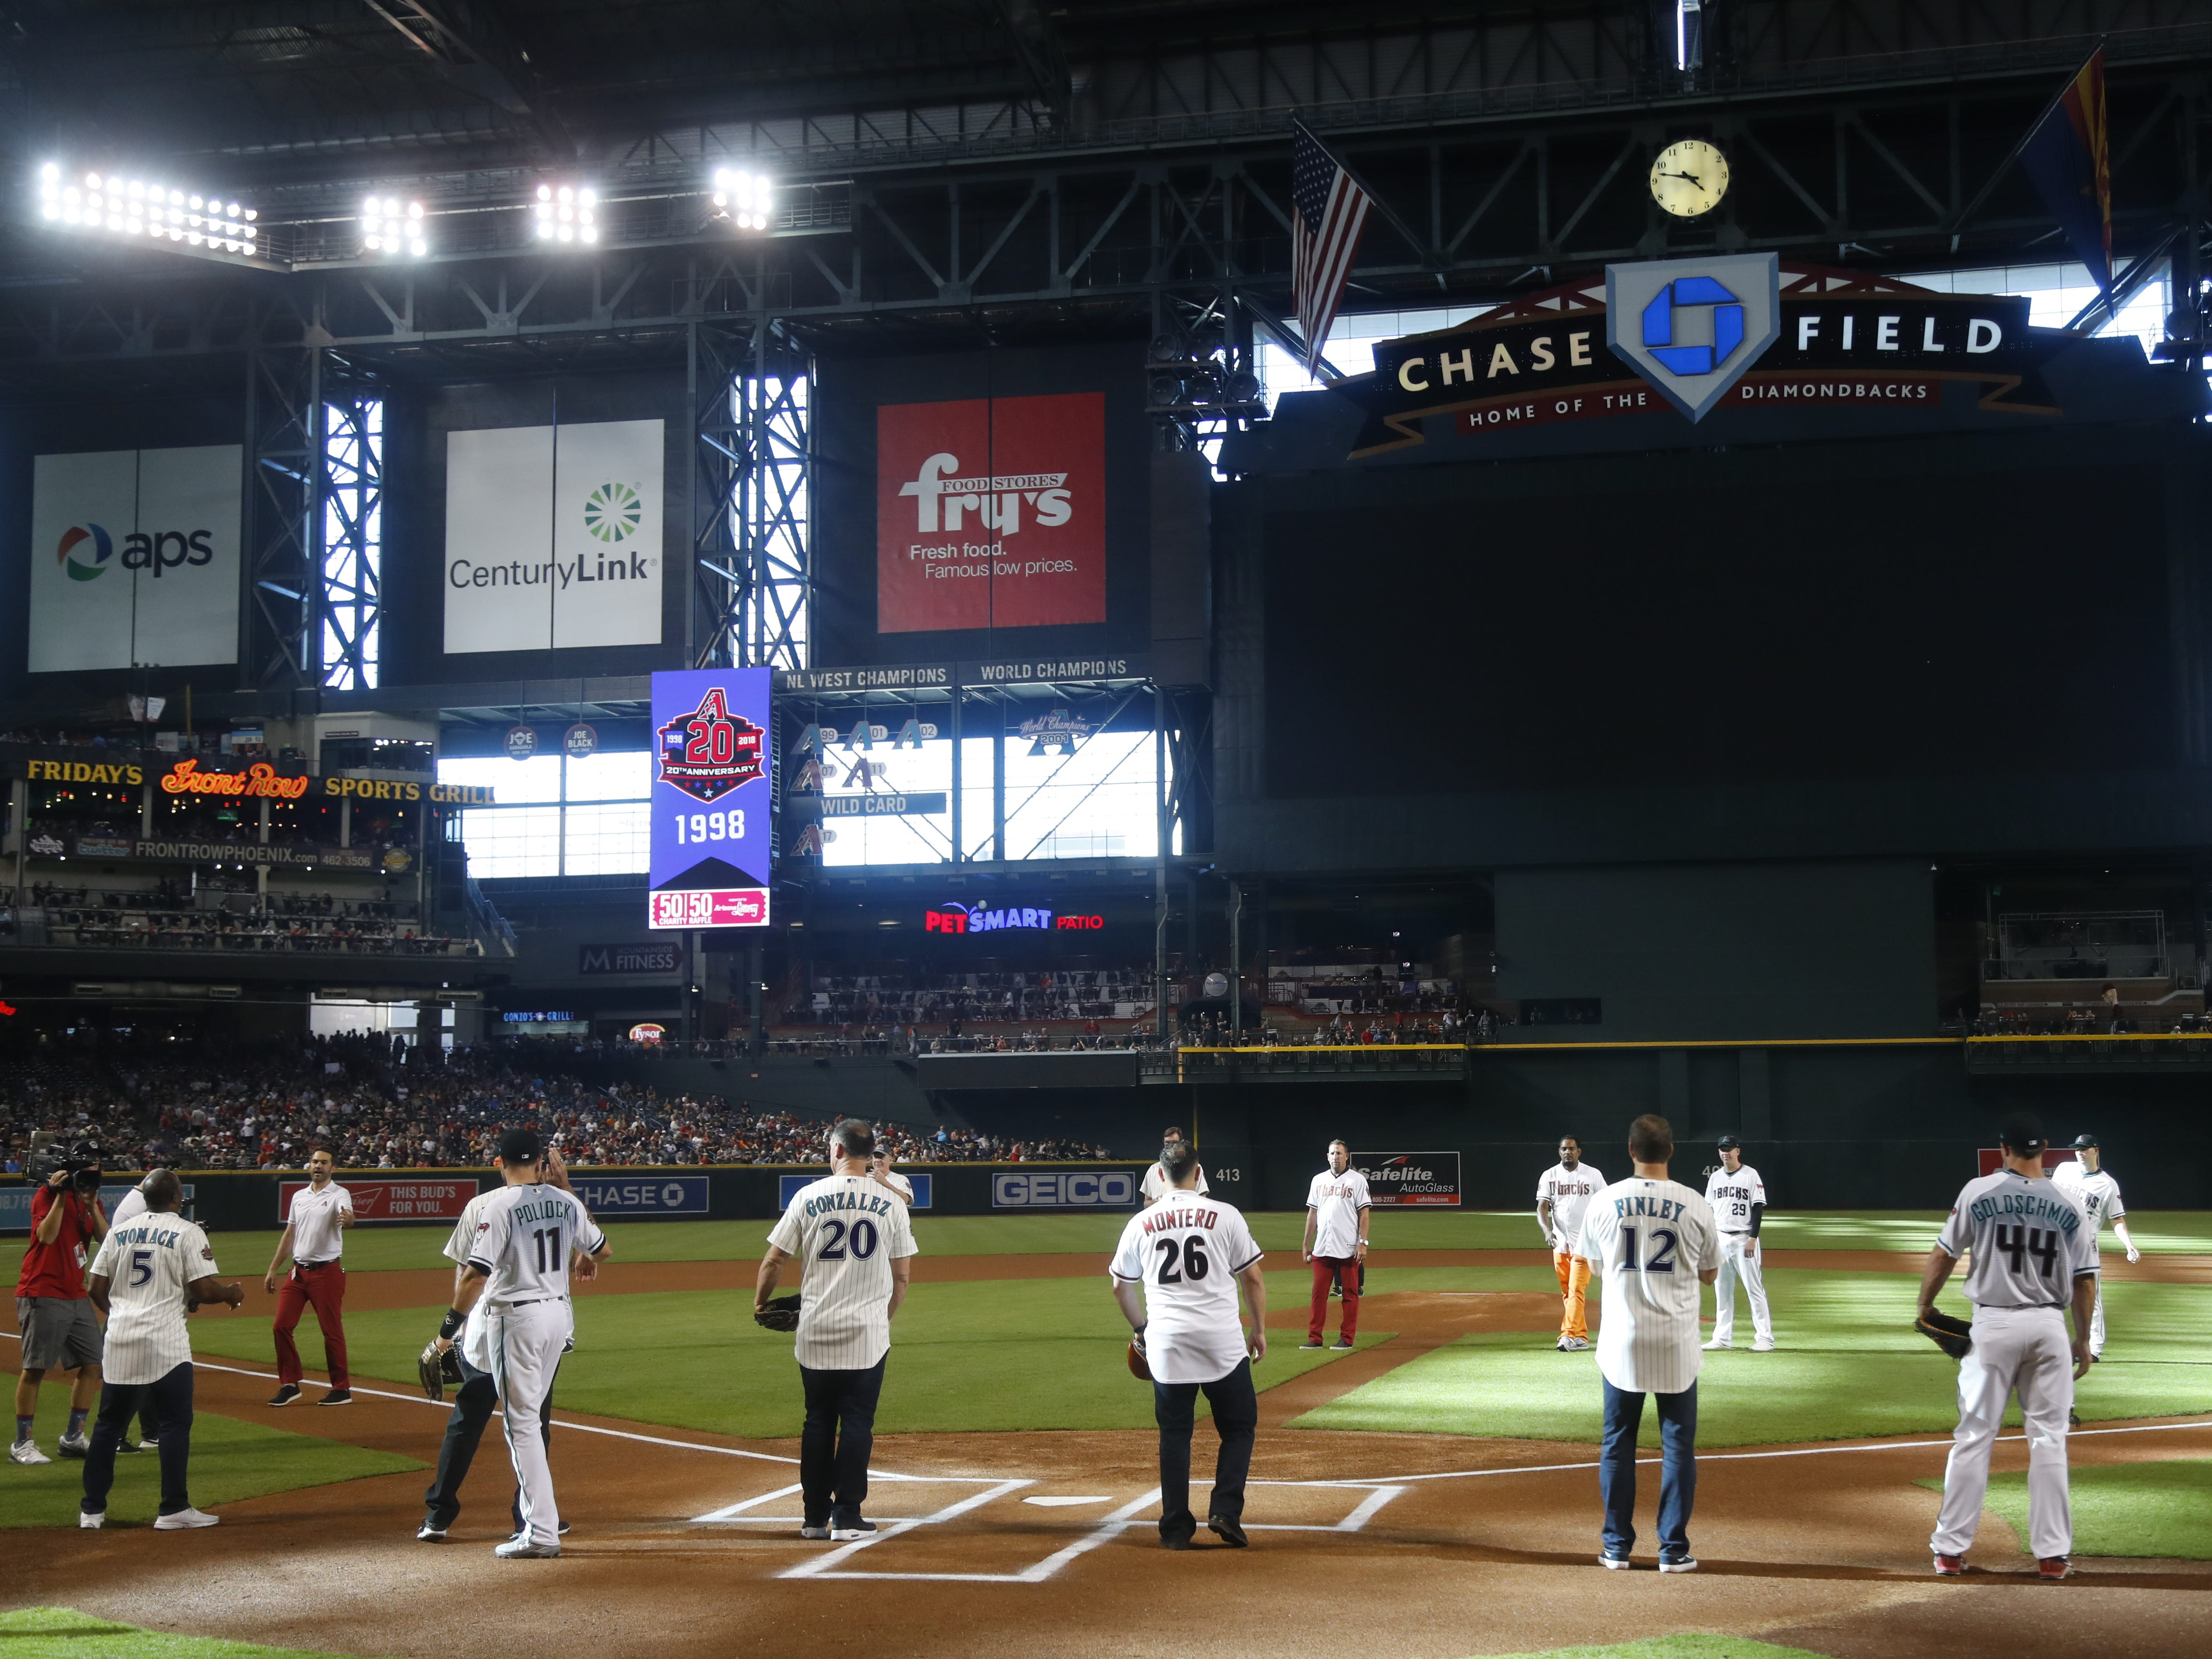 Former Diamondbacks players line up for the ceremonial first pitch before a Diamondbacks game at Chase Field in Phoenix, Ariz. on Aug. 4, 2018.